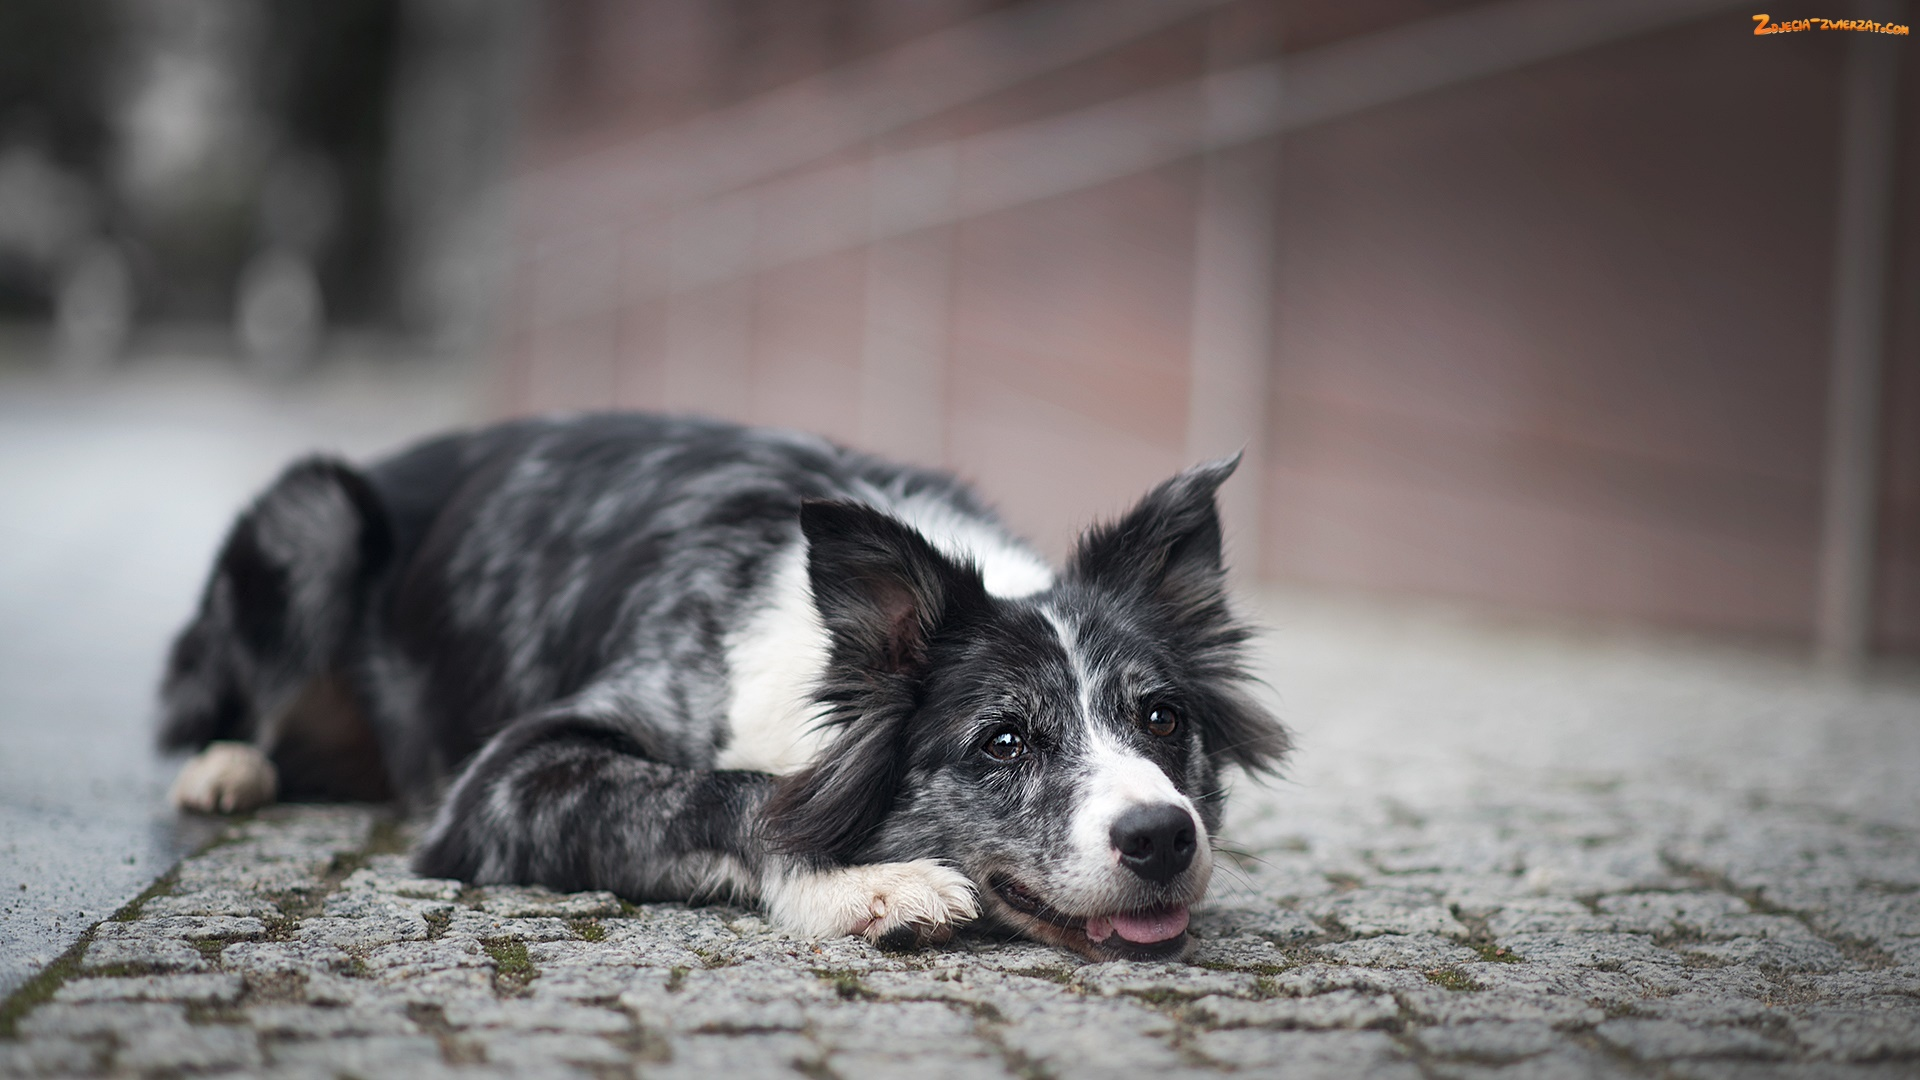 Border collie, Bruk, Pies, Mordka